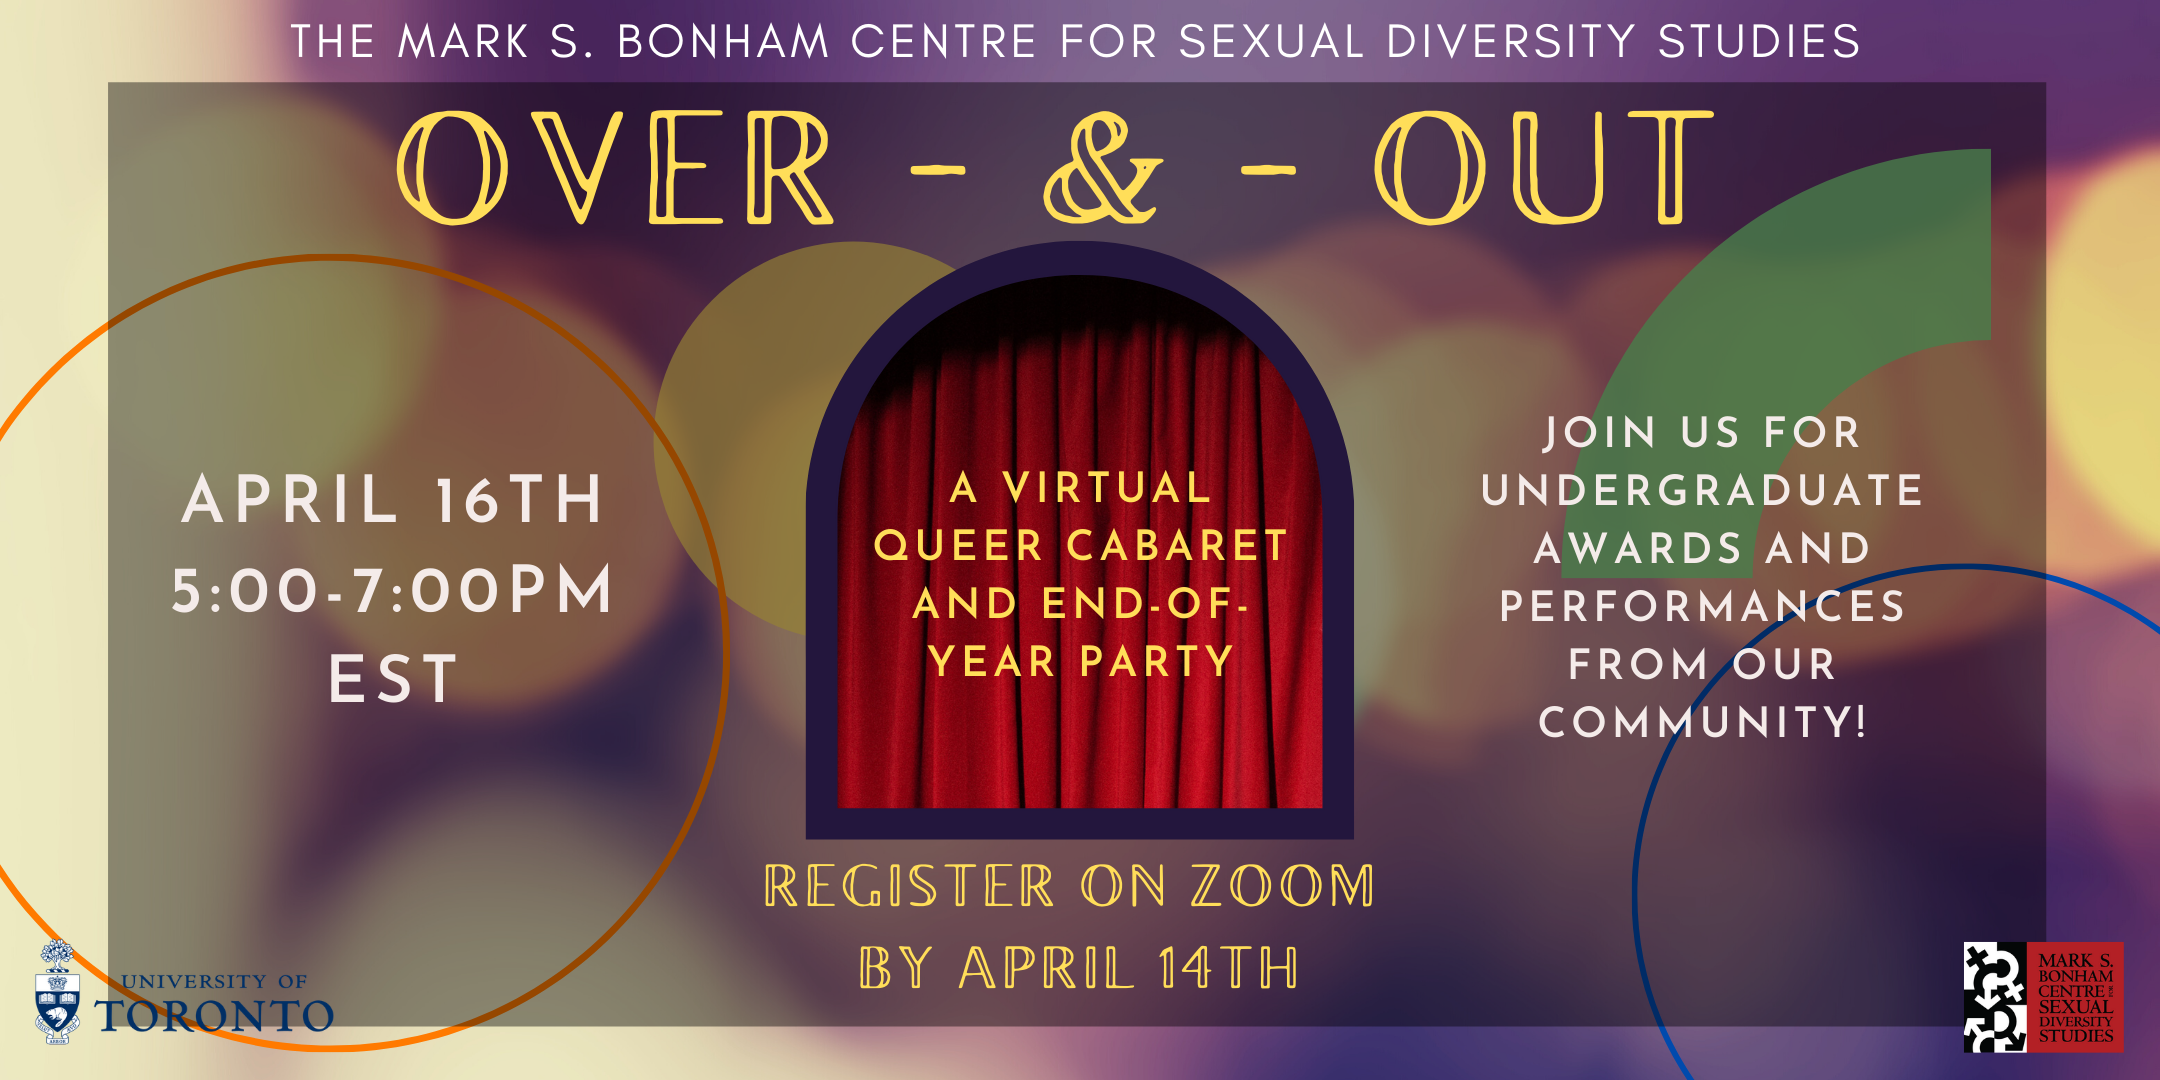 Over and Out: SDS Virtual Queer Cabaret and End-of-Year Party